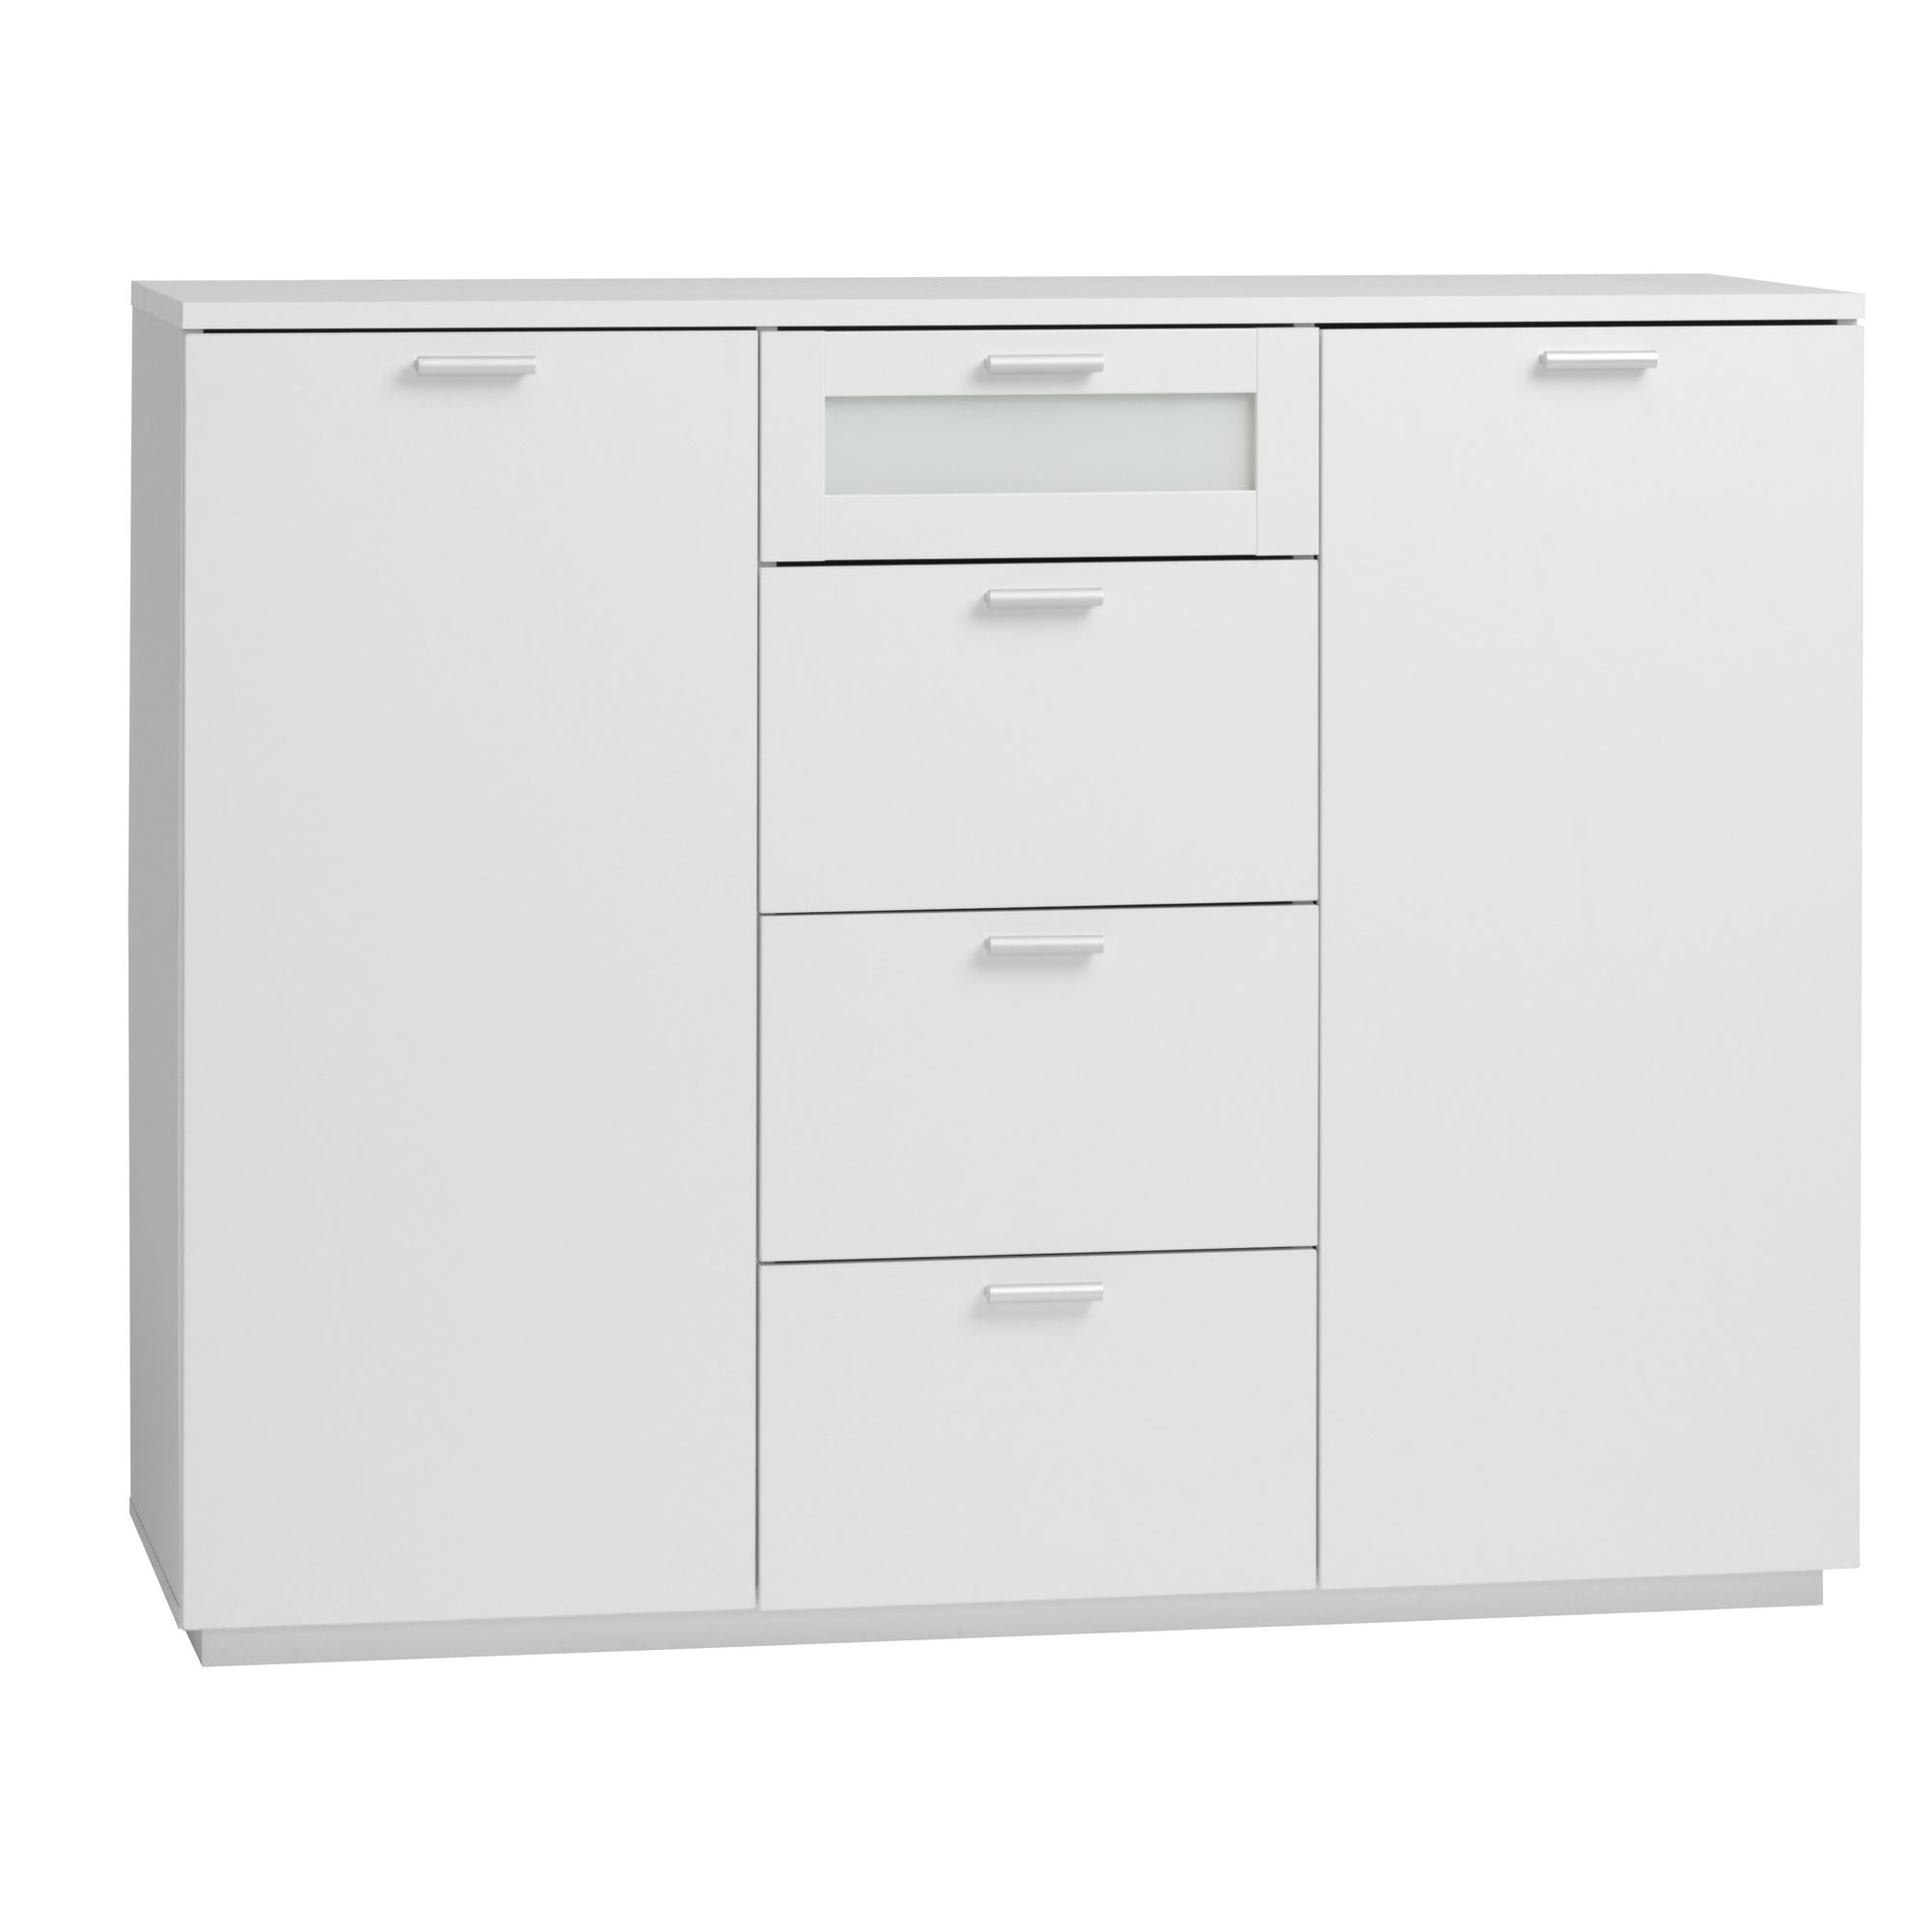 Tvilum New York Sideboard with Two Doors and Four Drawers in White at Tesco Direct